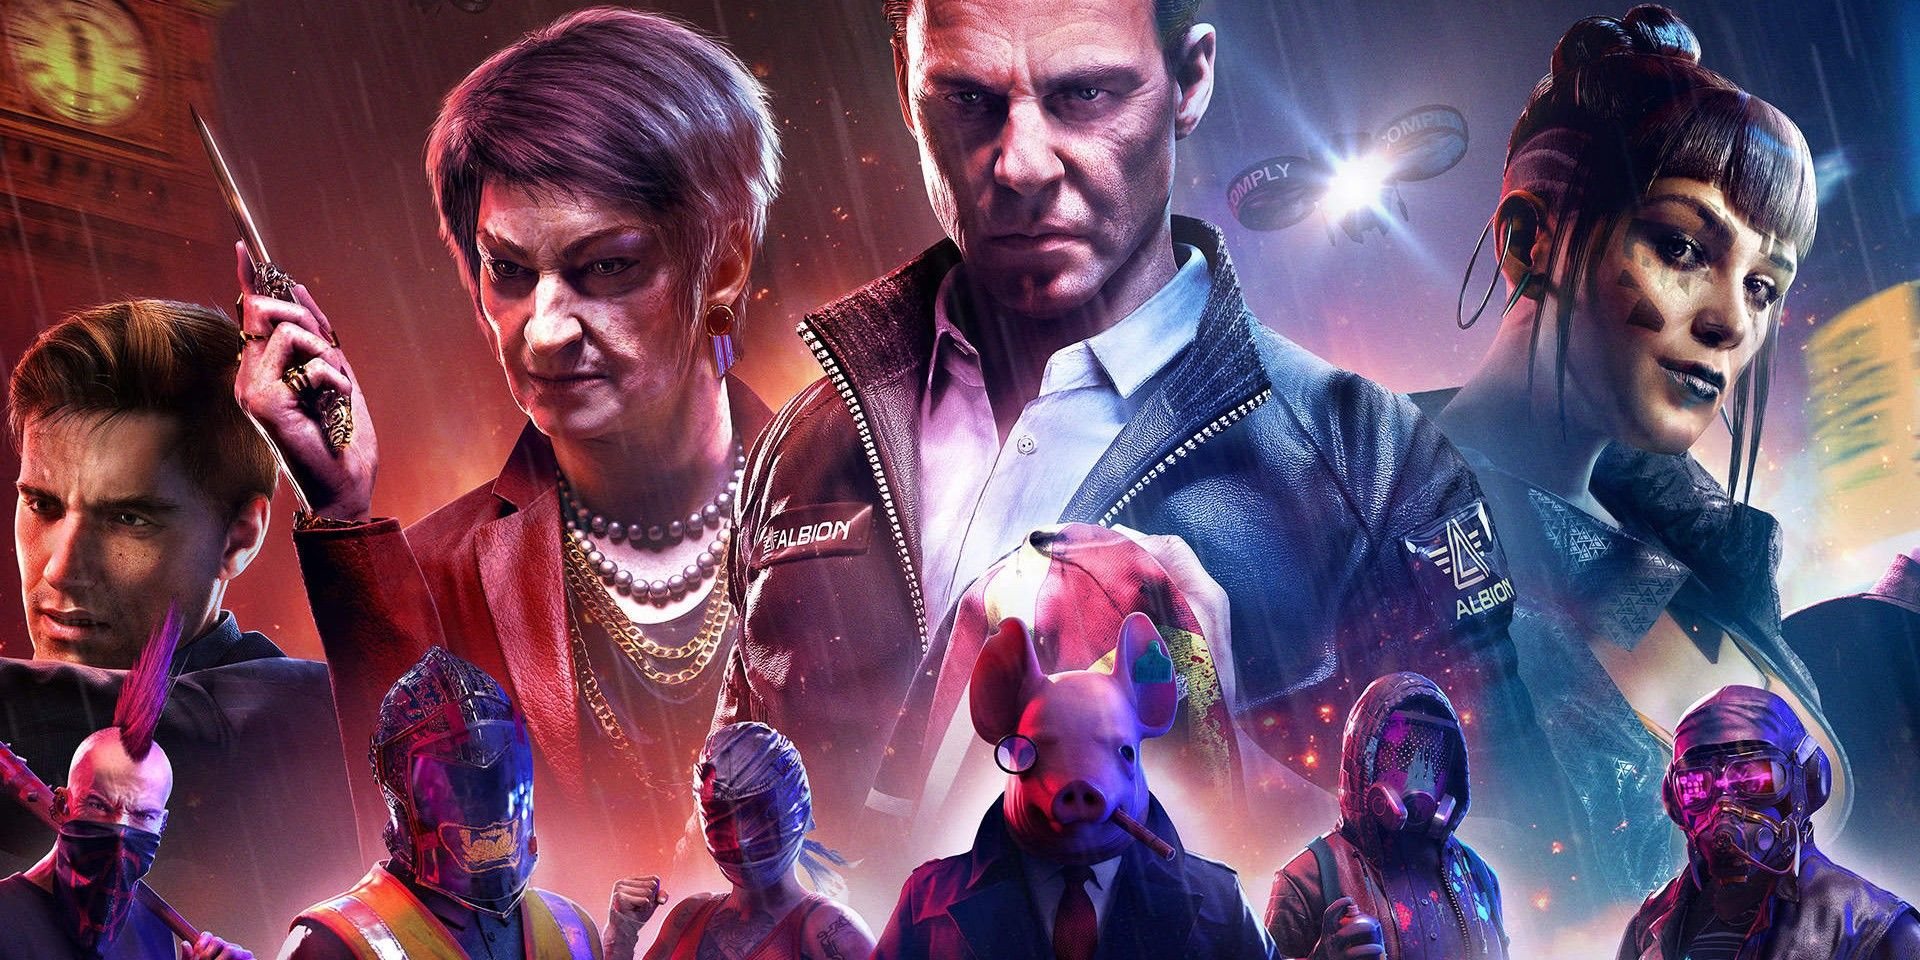 Why Watch Dogs Legion Is Rated Mature Screen Rant